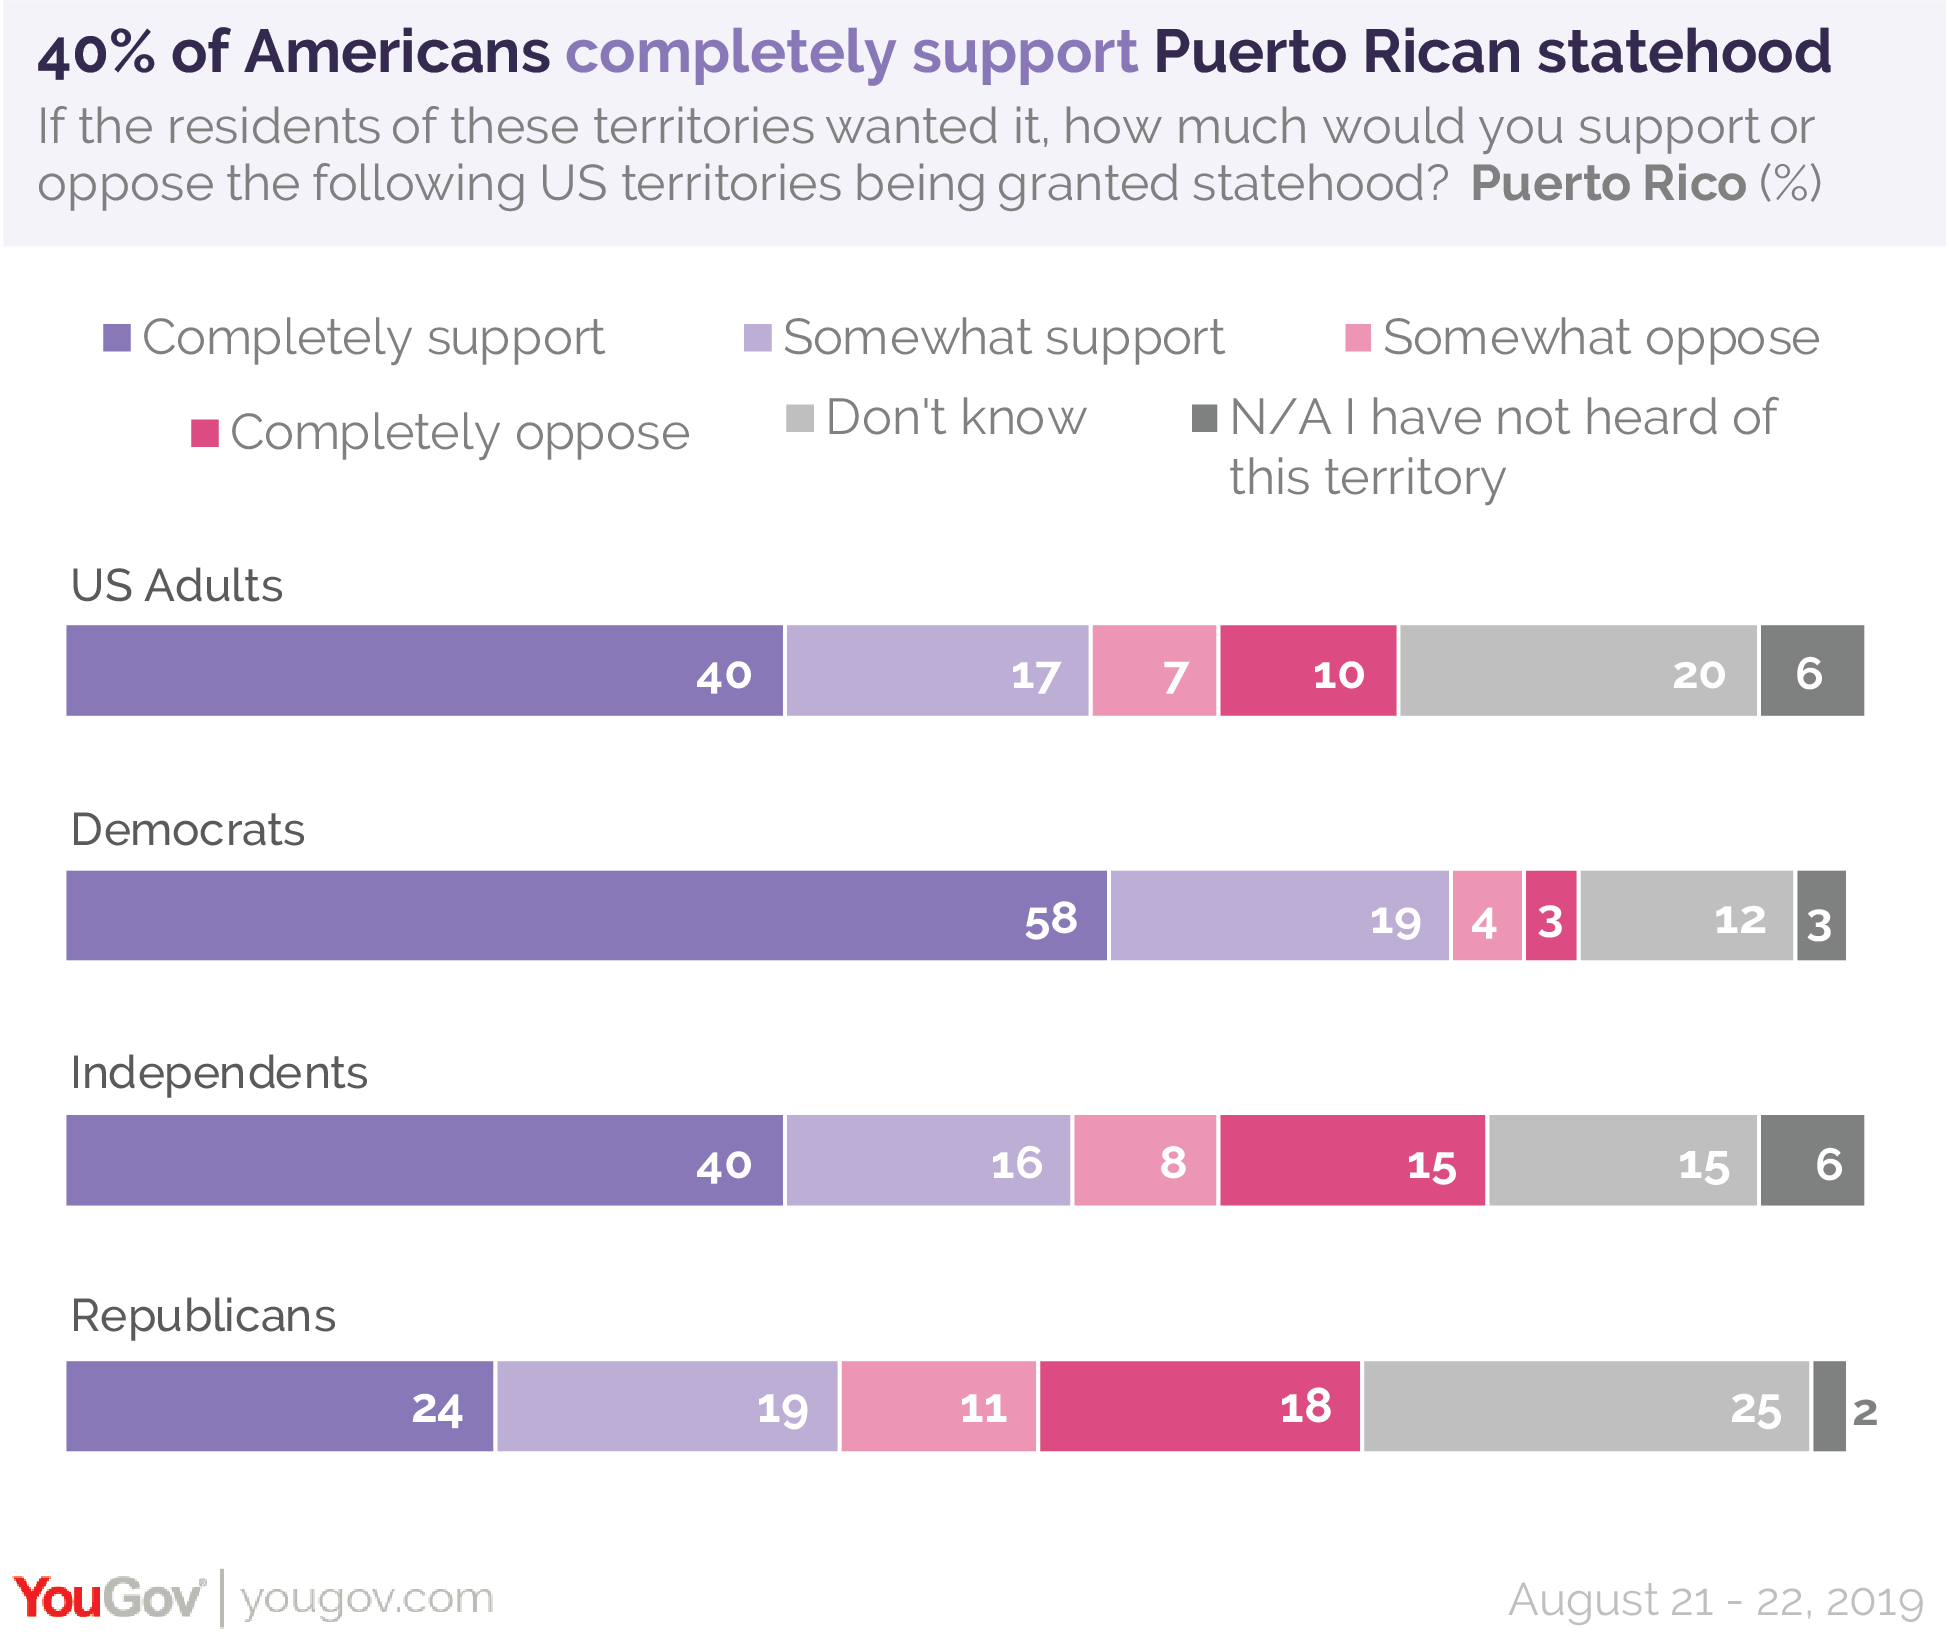 40% of Americans completely support Puerto Rican statehood